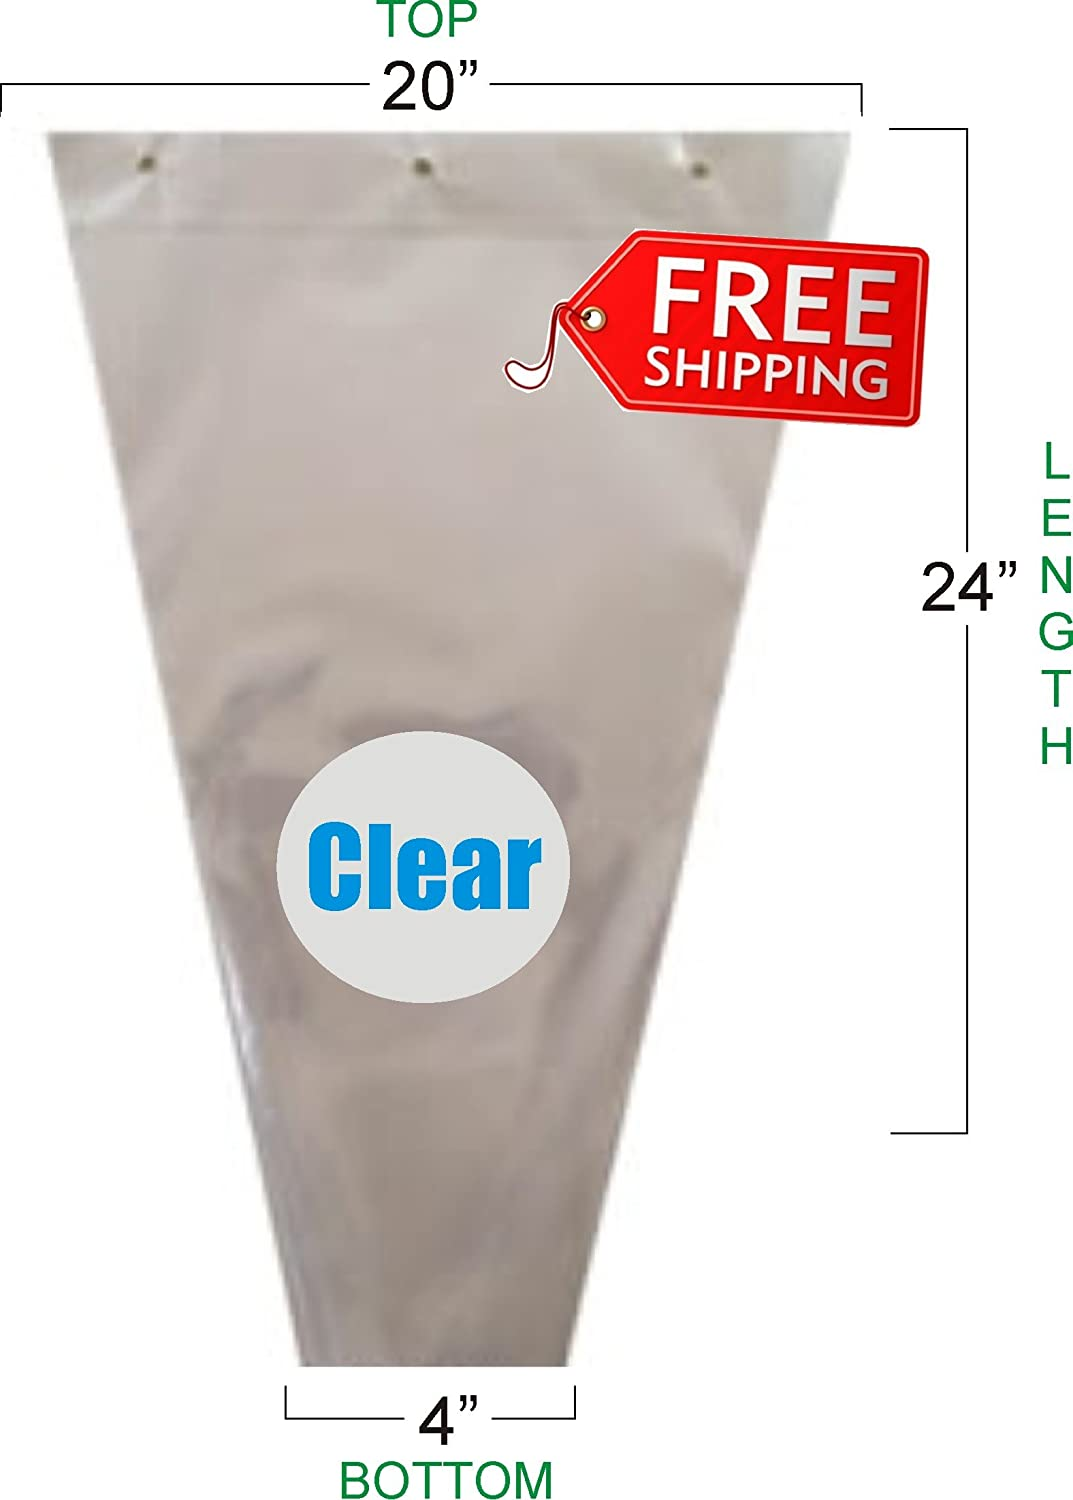 Flower Bouquet Unprinted 37 Micron Clear Cellophane Bags Plastic Sleeve Bag 50 Pcs 20x24x4 GreenhouseGrowerStore.com